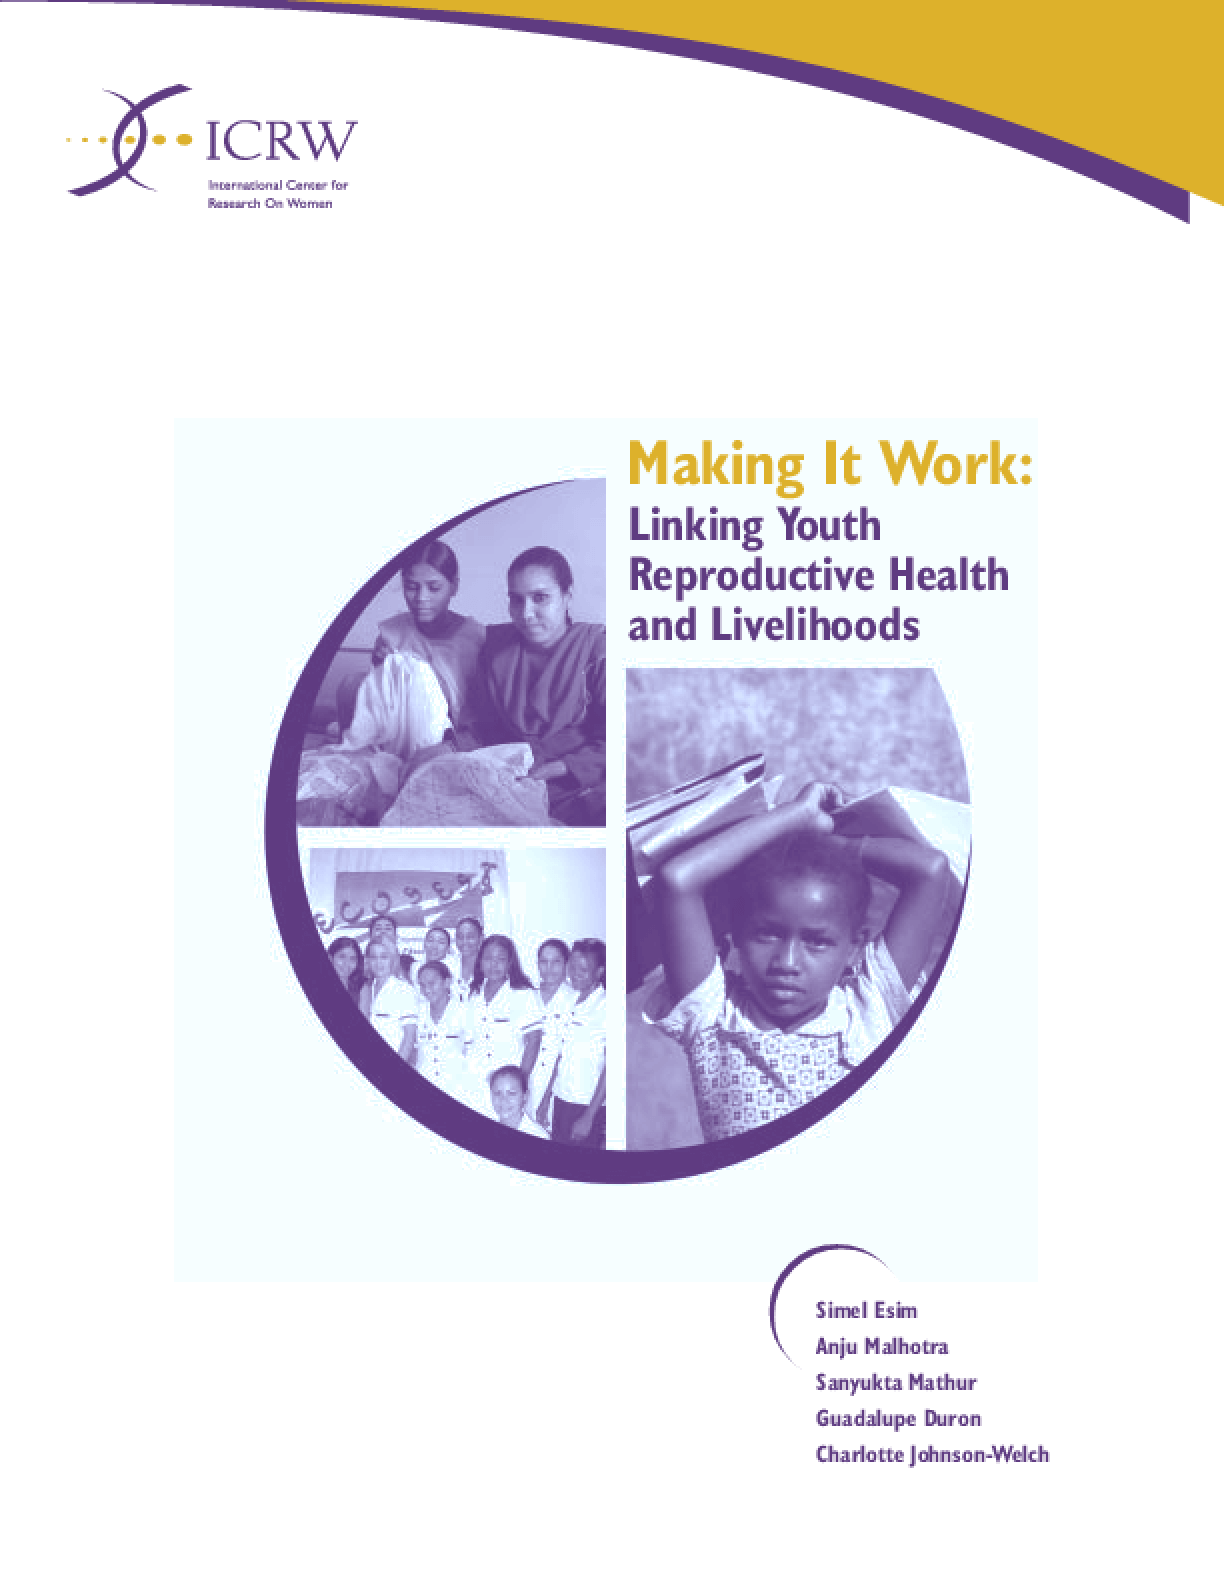 Making It Work: Linking Youth Reproductive Health and Livelihoods